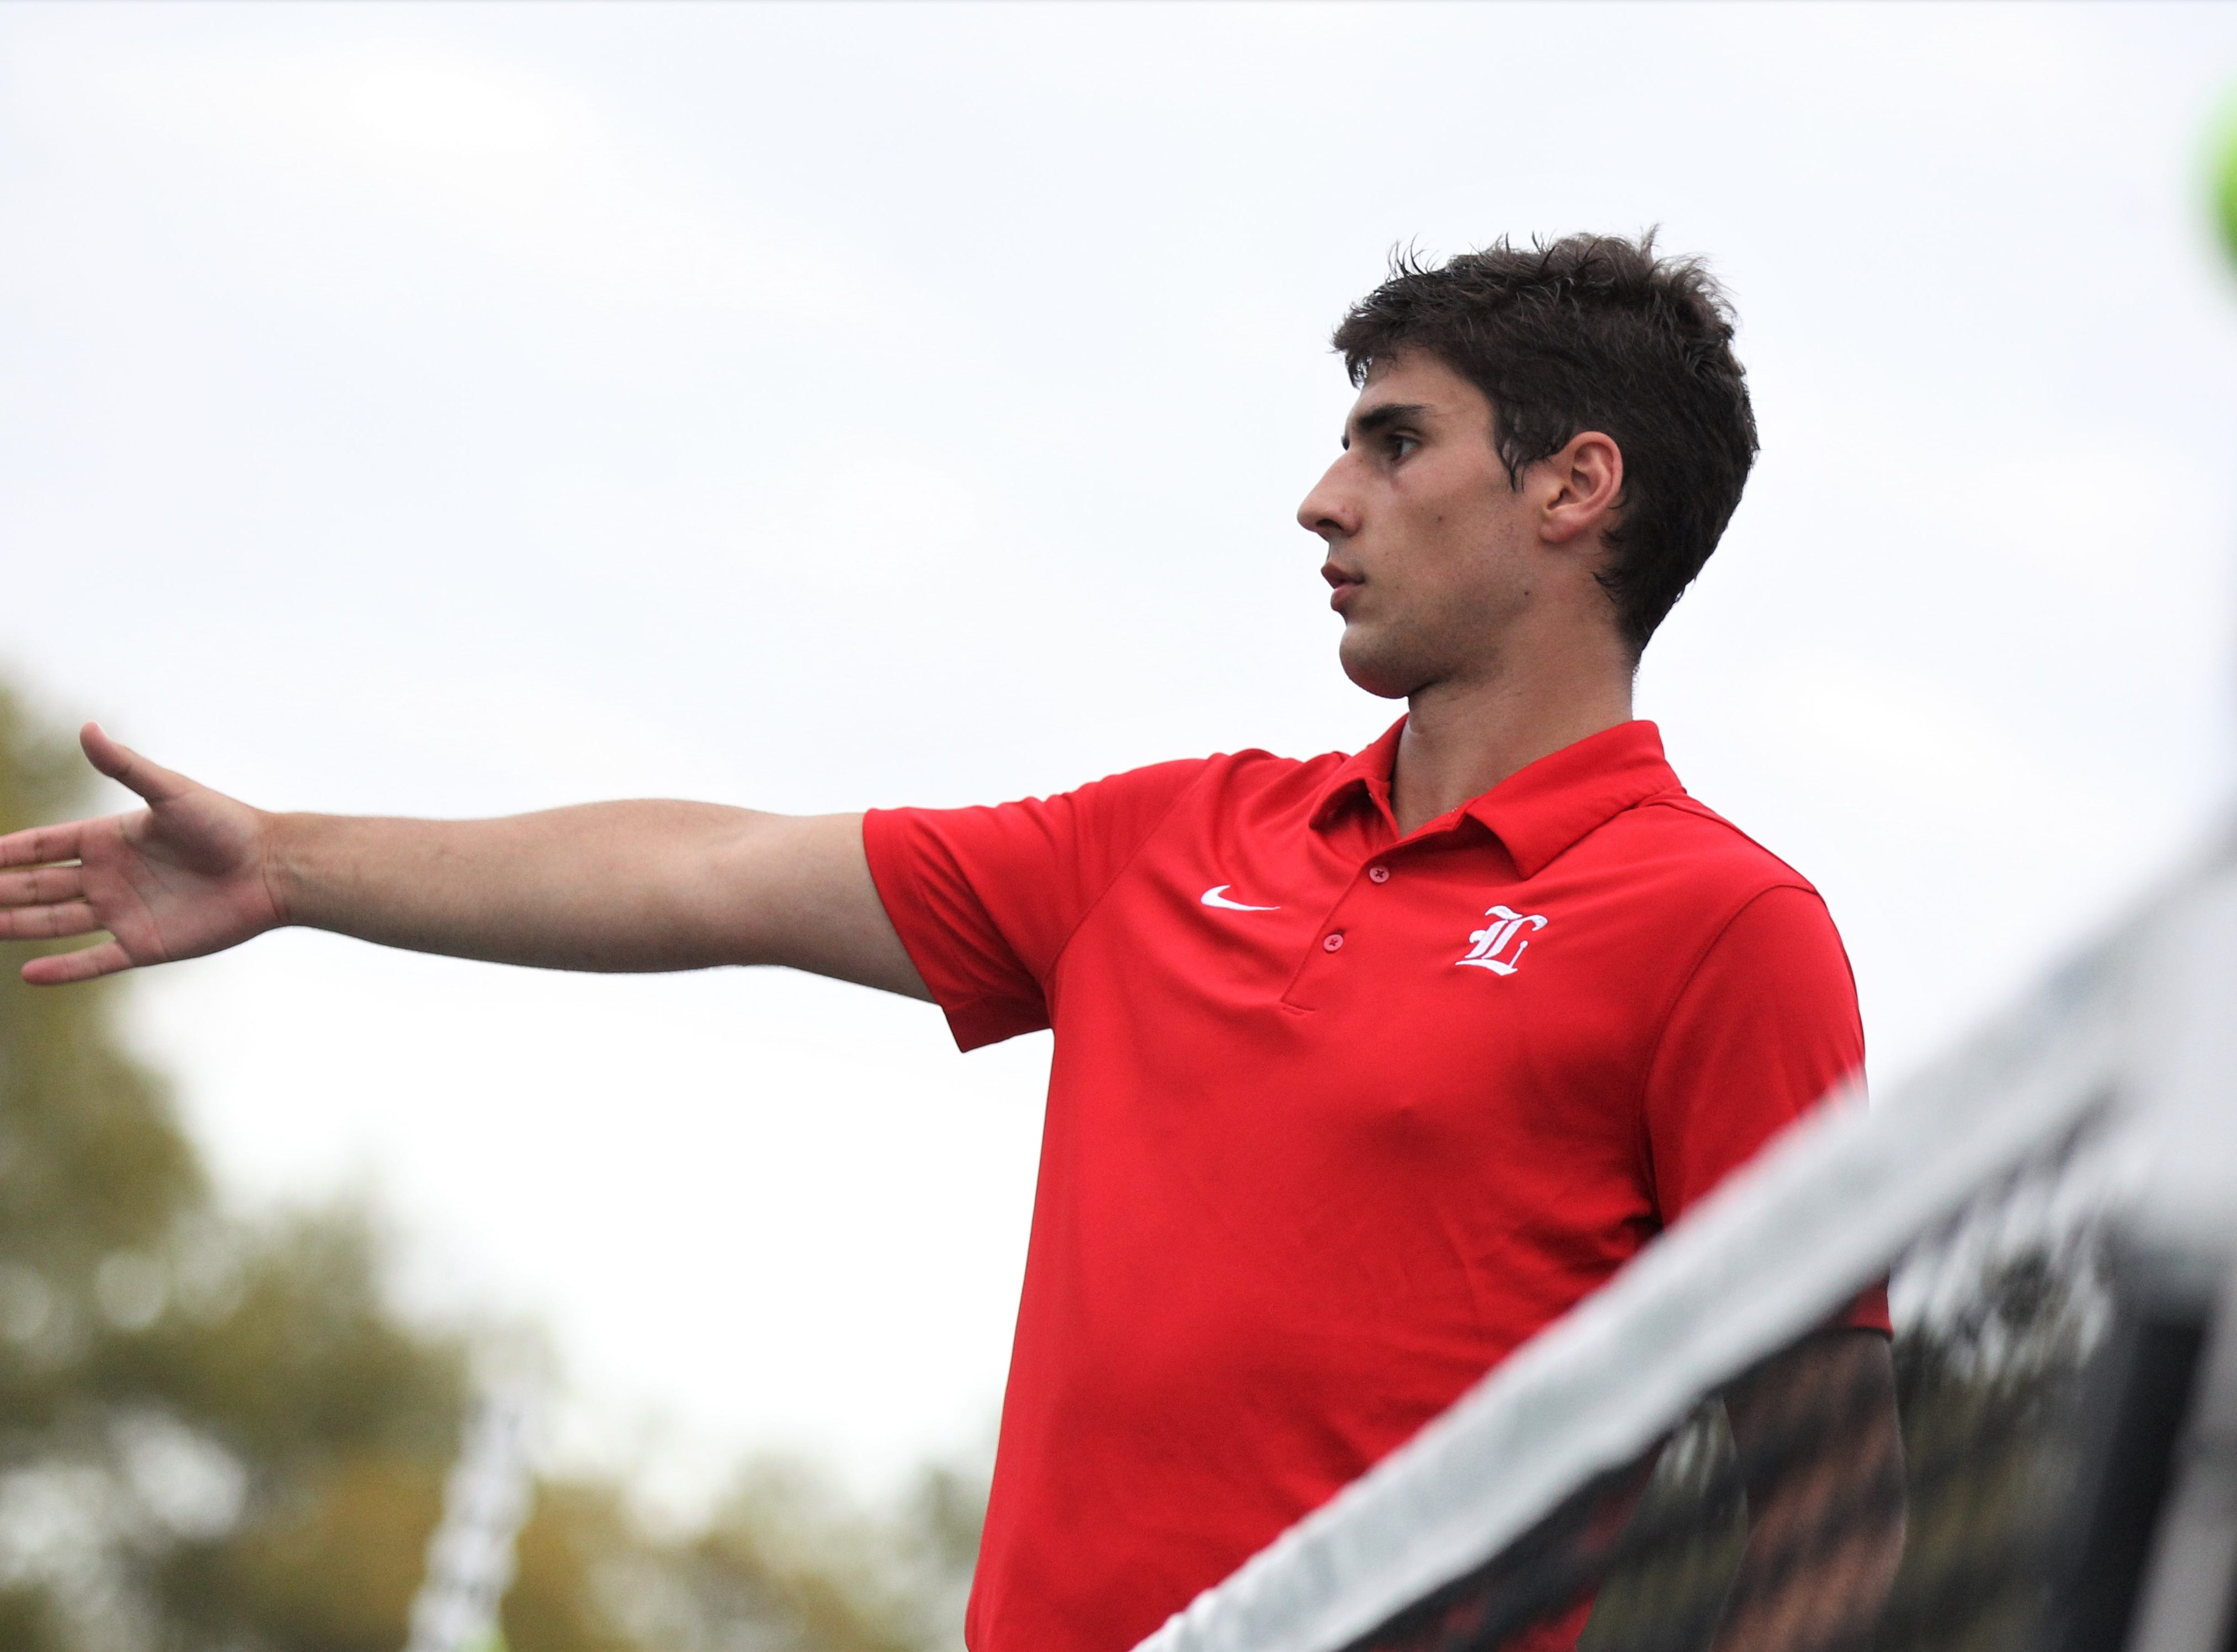 Leon's Petar Leontikj extends his hand for a post-match handshake after winning during the high school boys and girls city tennis tournament at Tom Brown Park on Thursday, March 14, 2019.